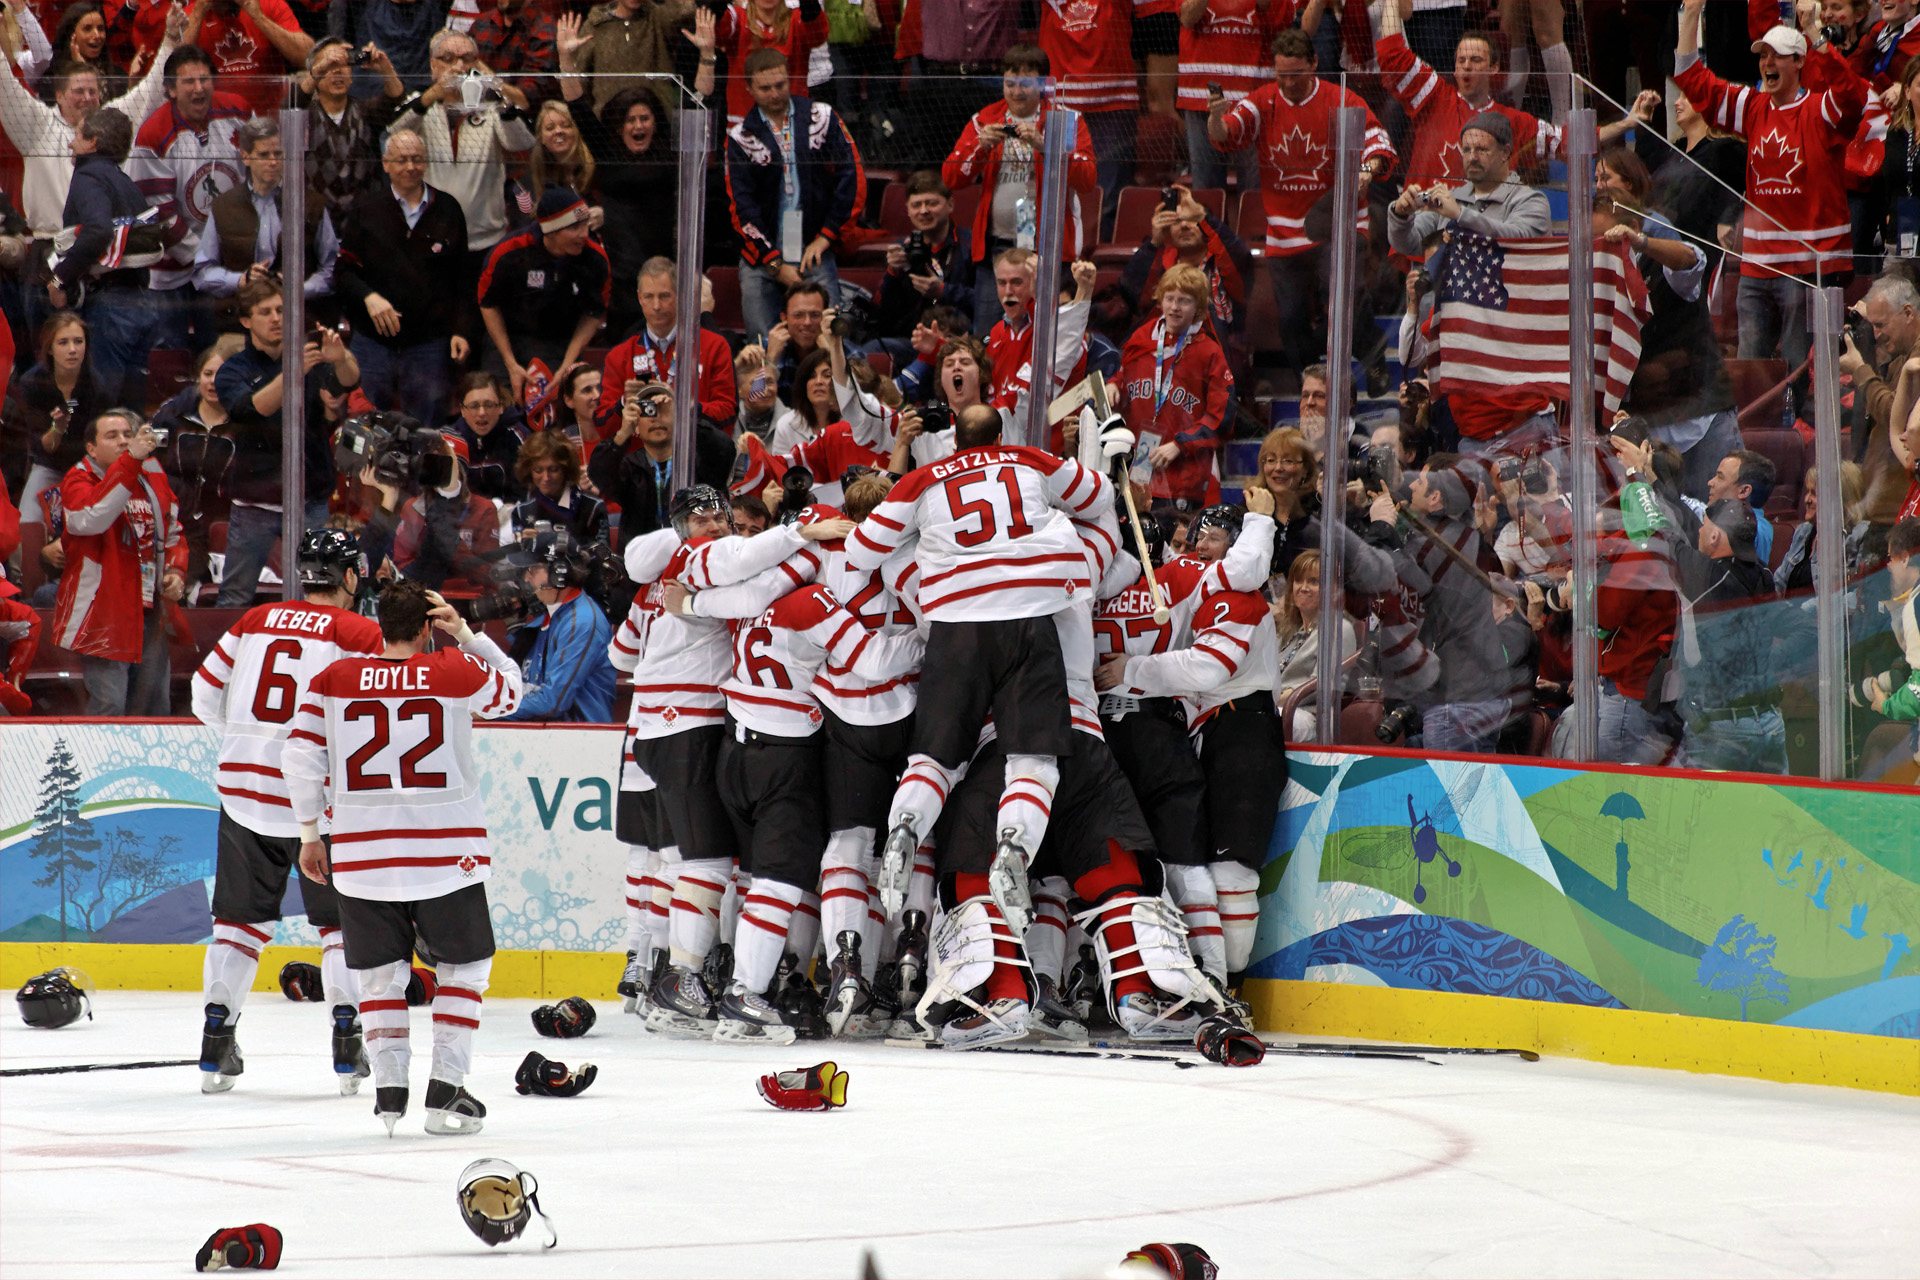 hockey s influence on a 5 page essay on the impact the the canadian men s ice hockey team celebrates winning the gold medal in overtime over the united